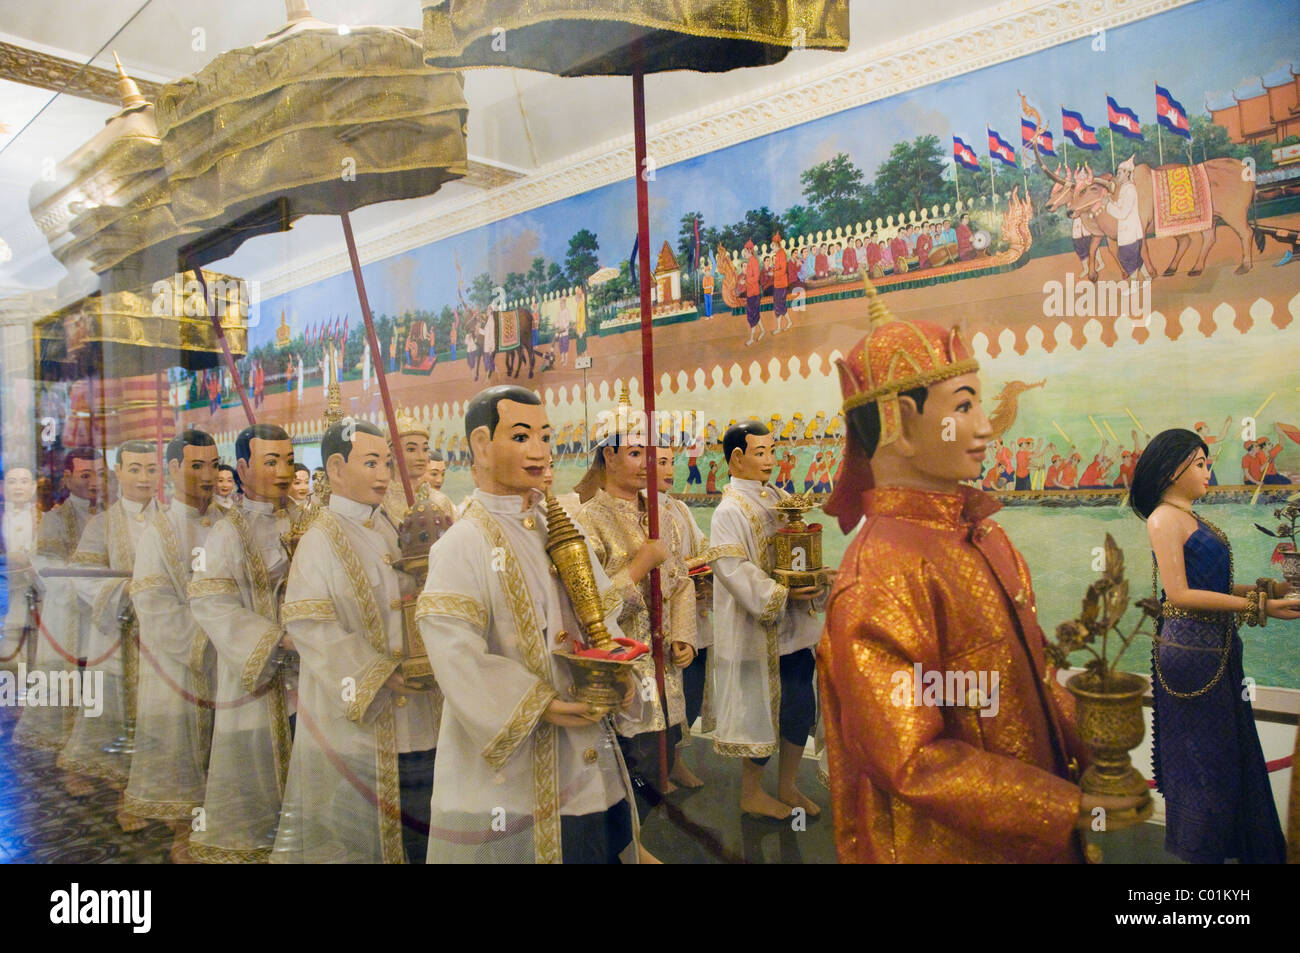 Model of the procession of the crown jewels in the Royal Palace, Phnom Penh, Cambodia, Indochina, Southeast Asia, - Stock Image